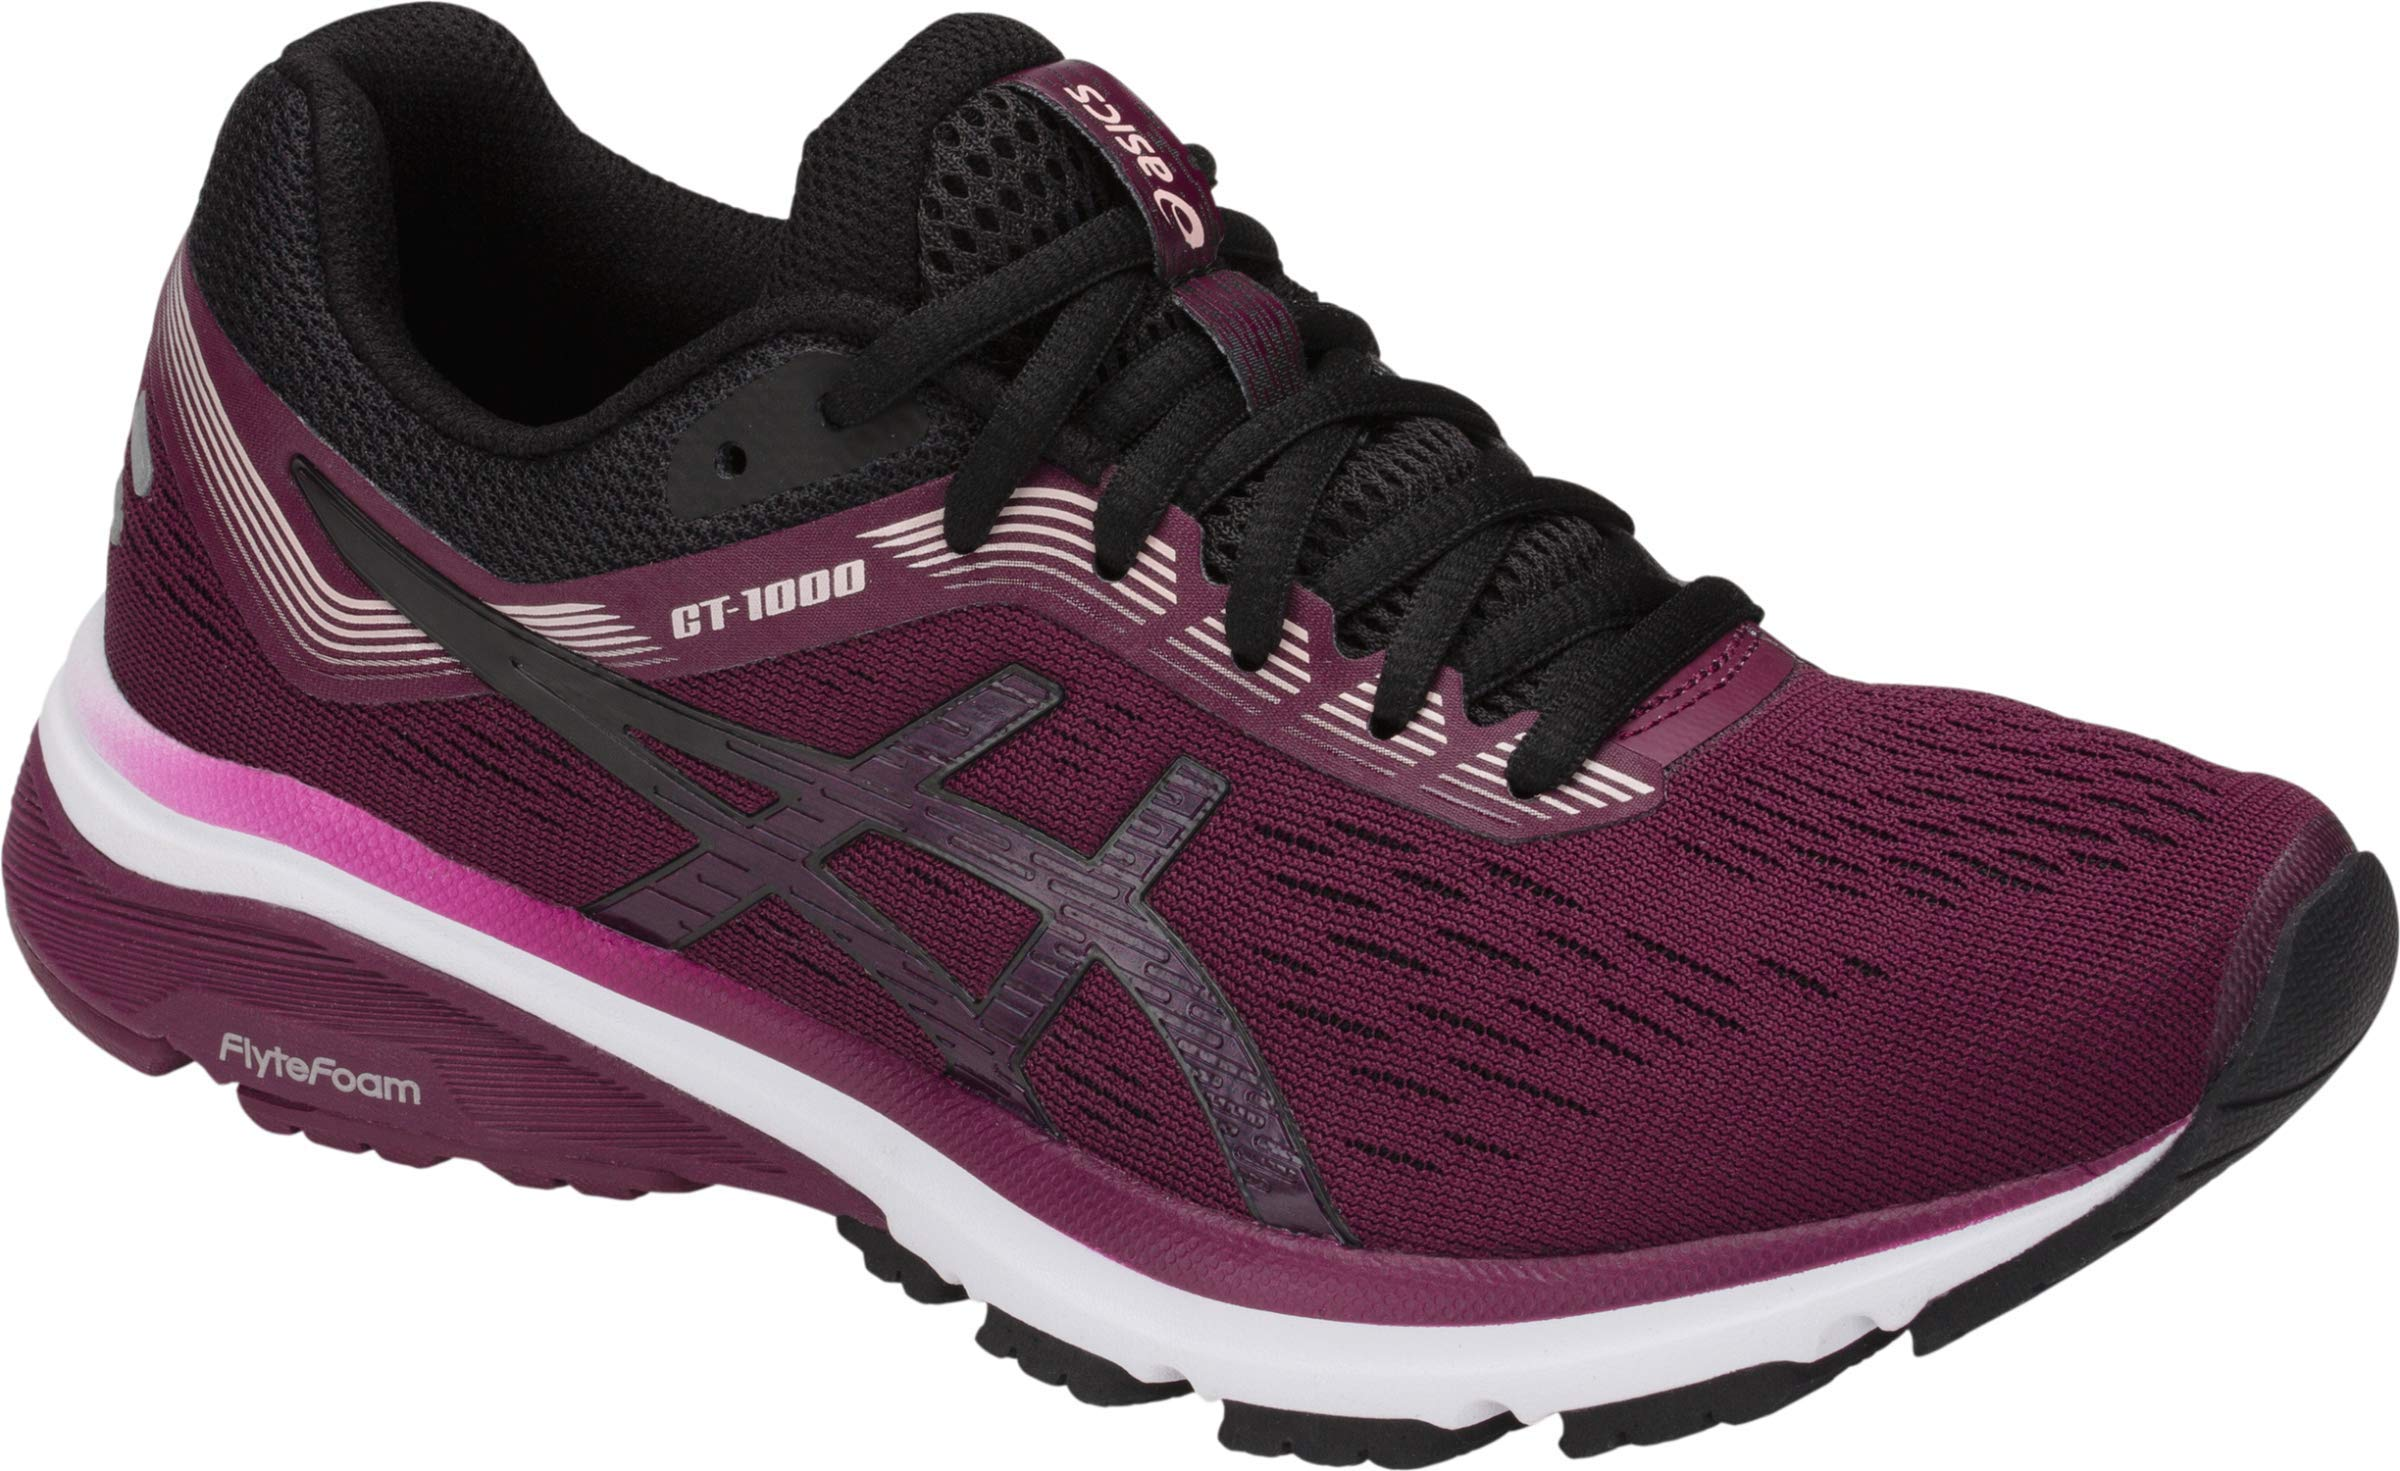 ASICS GT-1000 7 Women's Running Shoe, Roselle/Black, 5.5 B US by ASICS (Image #1)